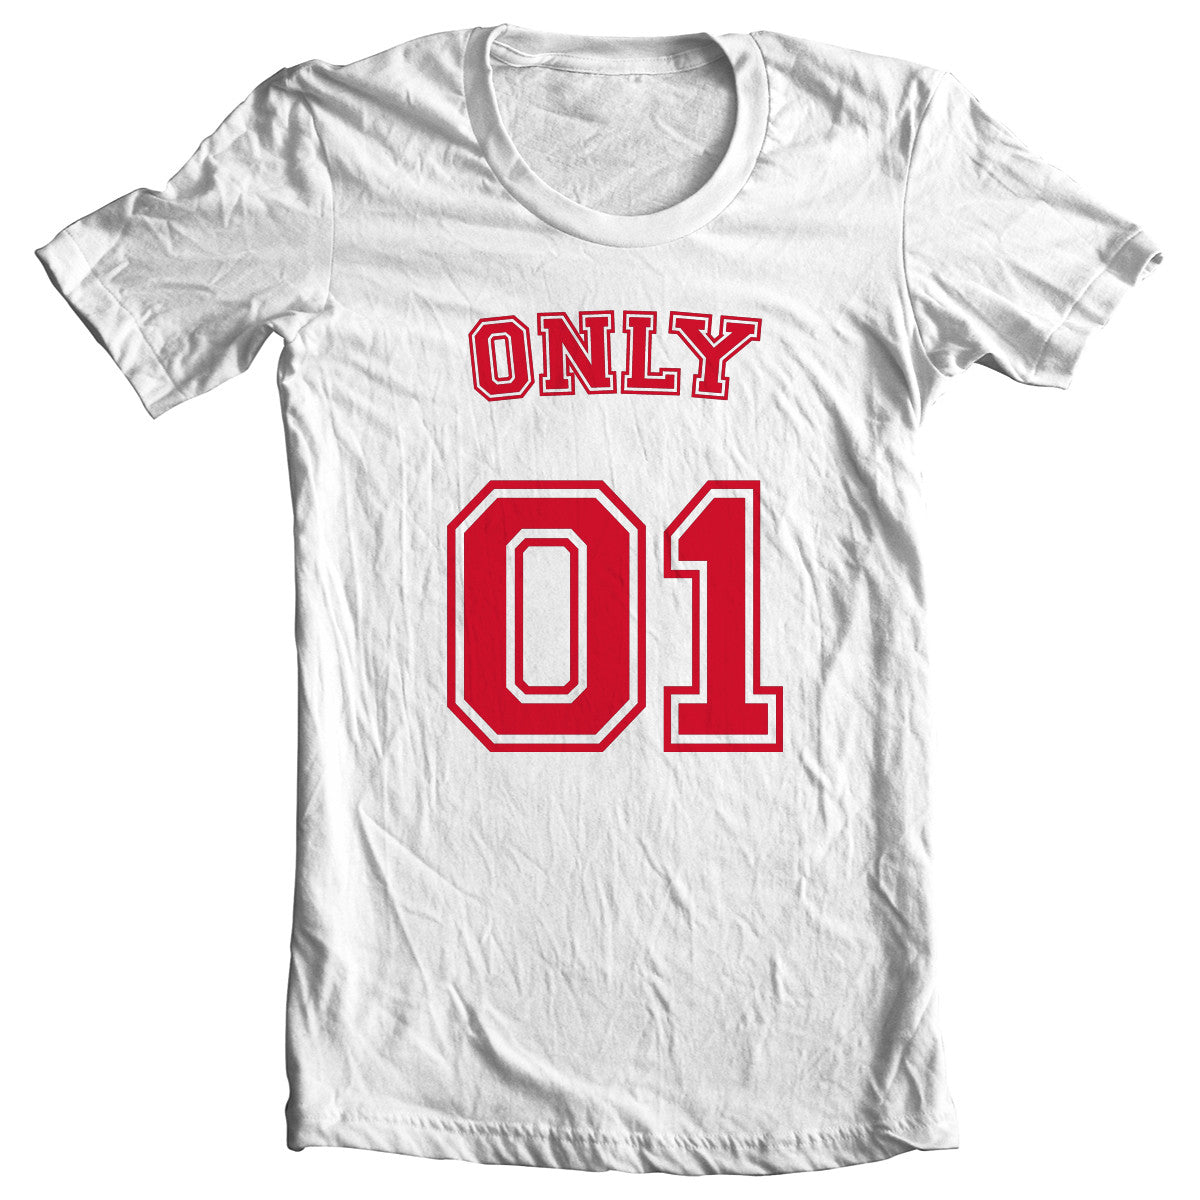 Only One jersey style t-shirt